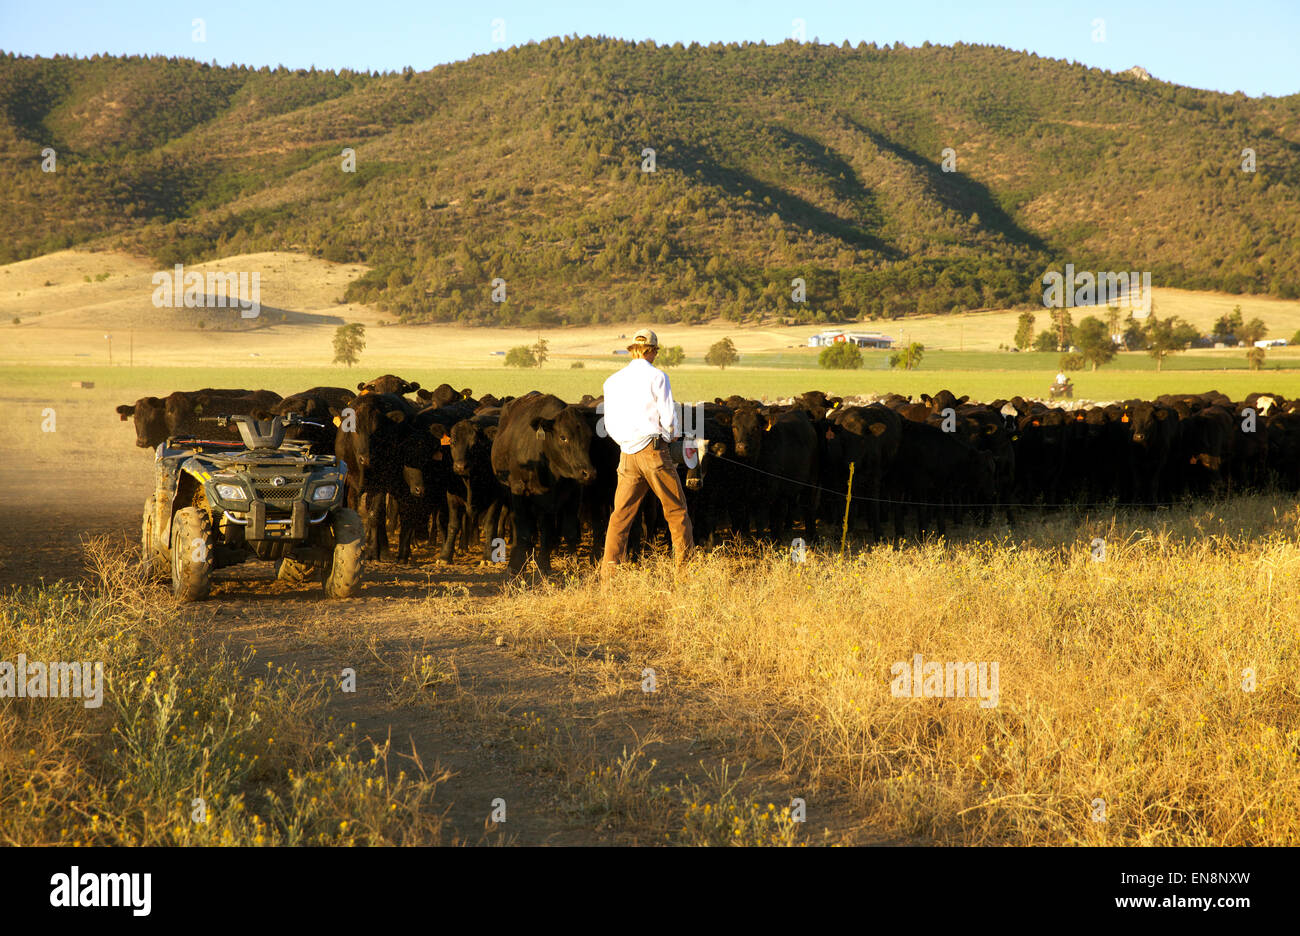 A cowboy moves a heard of cattle from one field to the next. - Stock Image